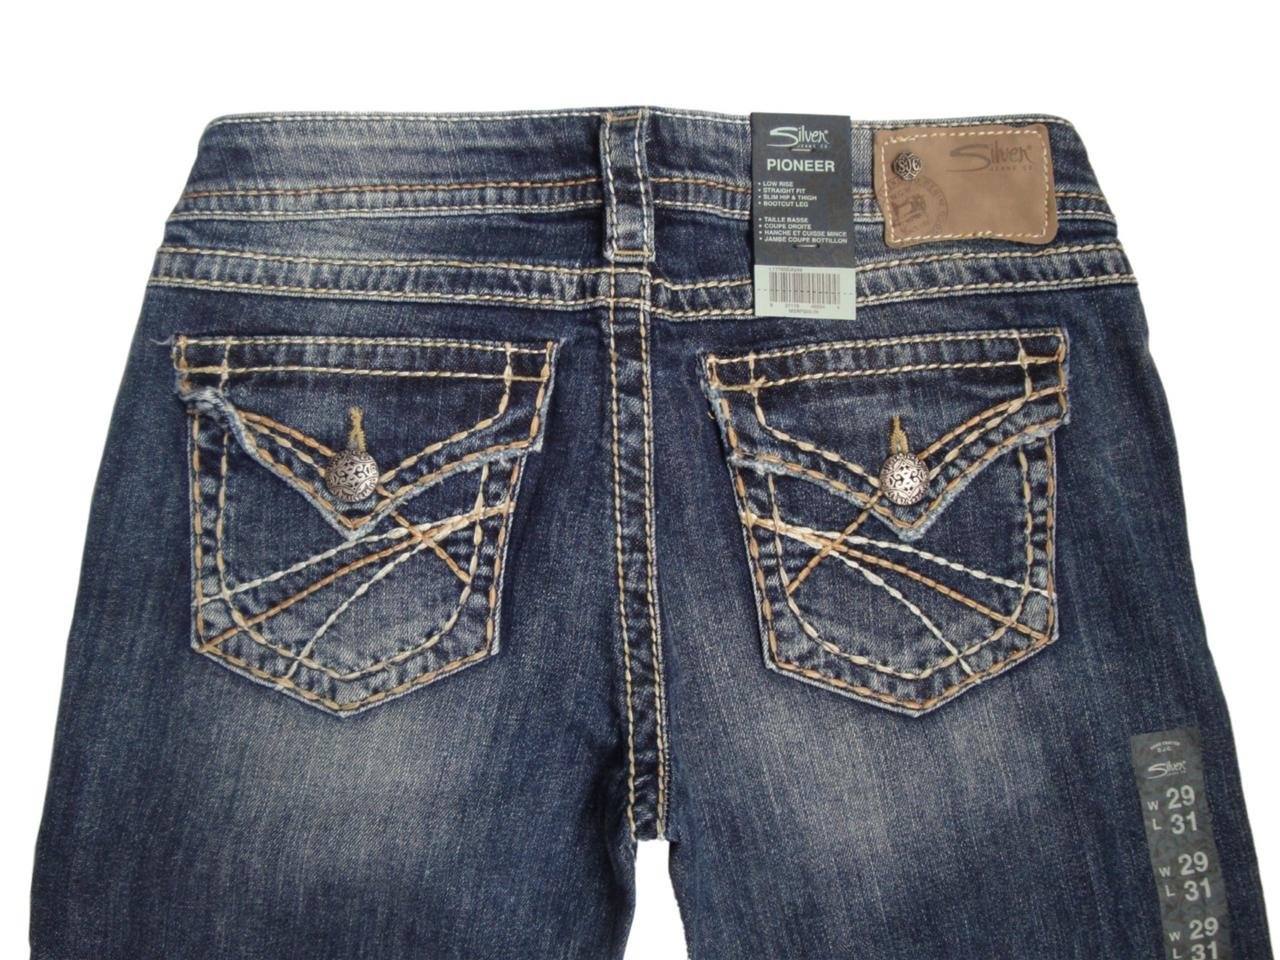 Silver Jeans Co. Pioneer Boot Cut Jeans Silver Jeans Co. Blue Womens Suki Leg X 29 Floral Royal Print Pattern Skinny Jeans. $ $ US 25 (2, XS) Silver Jeans Co. Blue Dark Rinse 32/30 Boot Cut Jeans. $